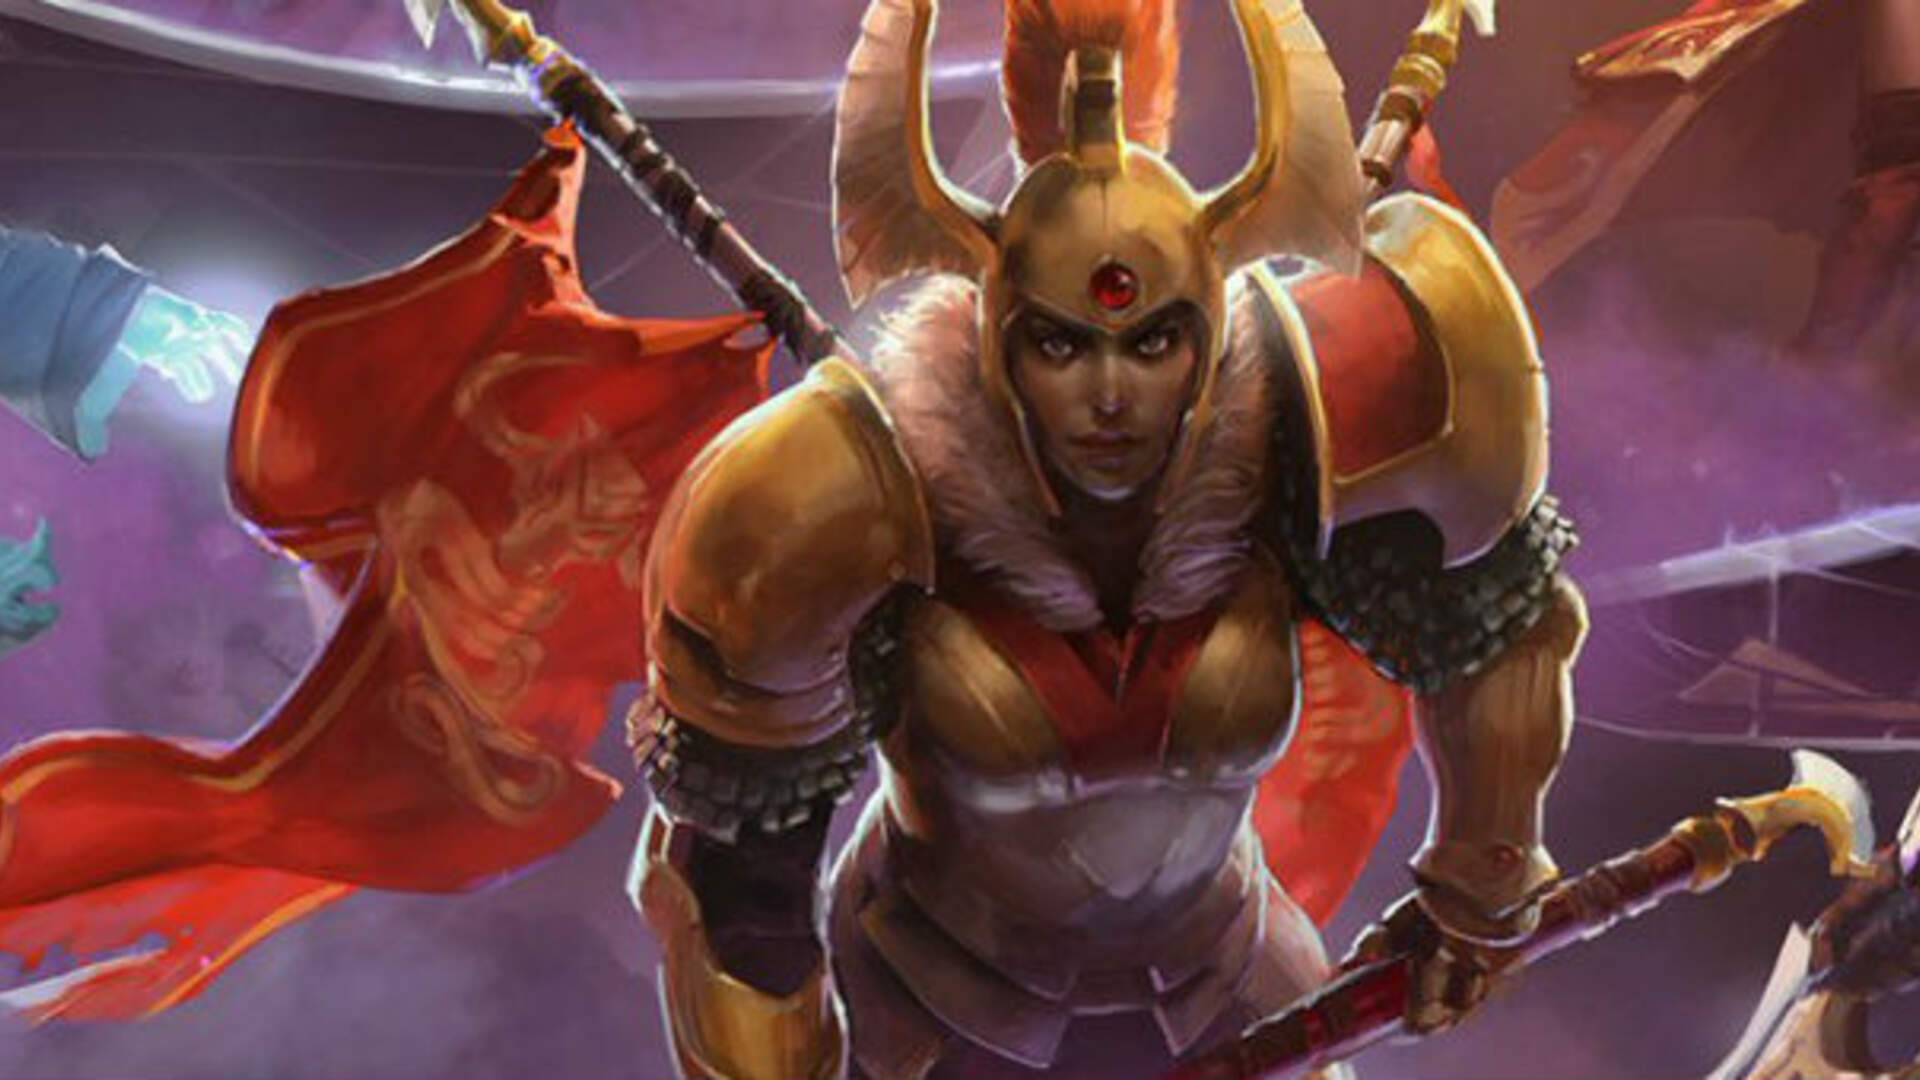 Valve Reveals Screenshots and Details for Artifact, its Dota 2 Card Game